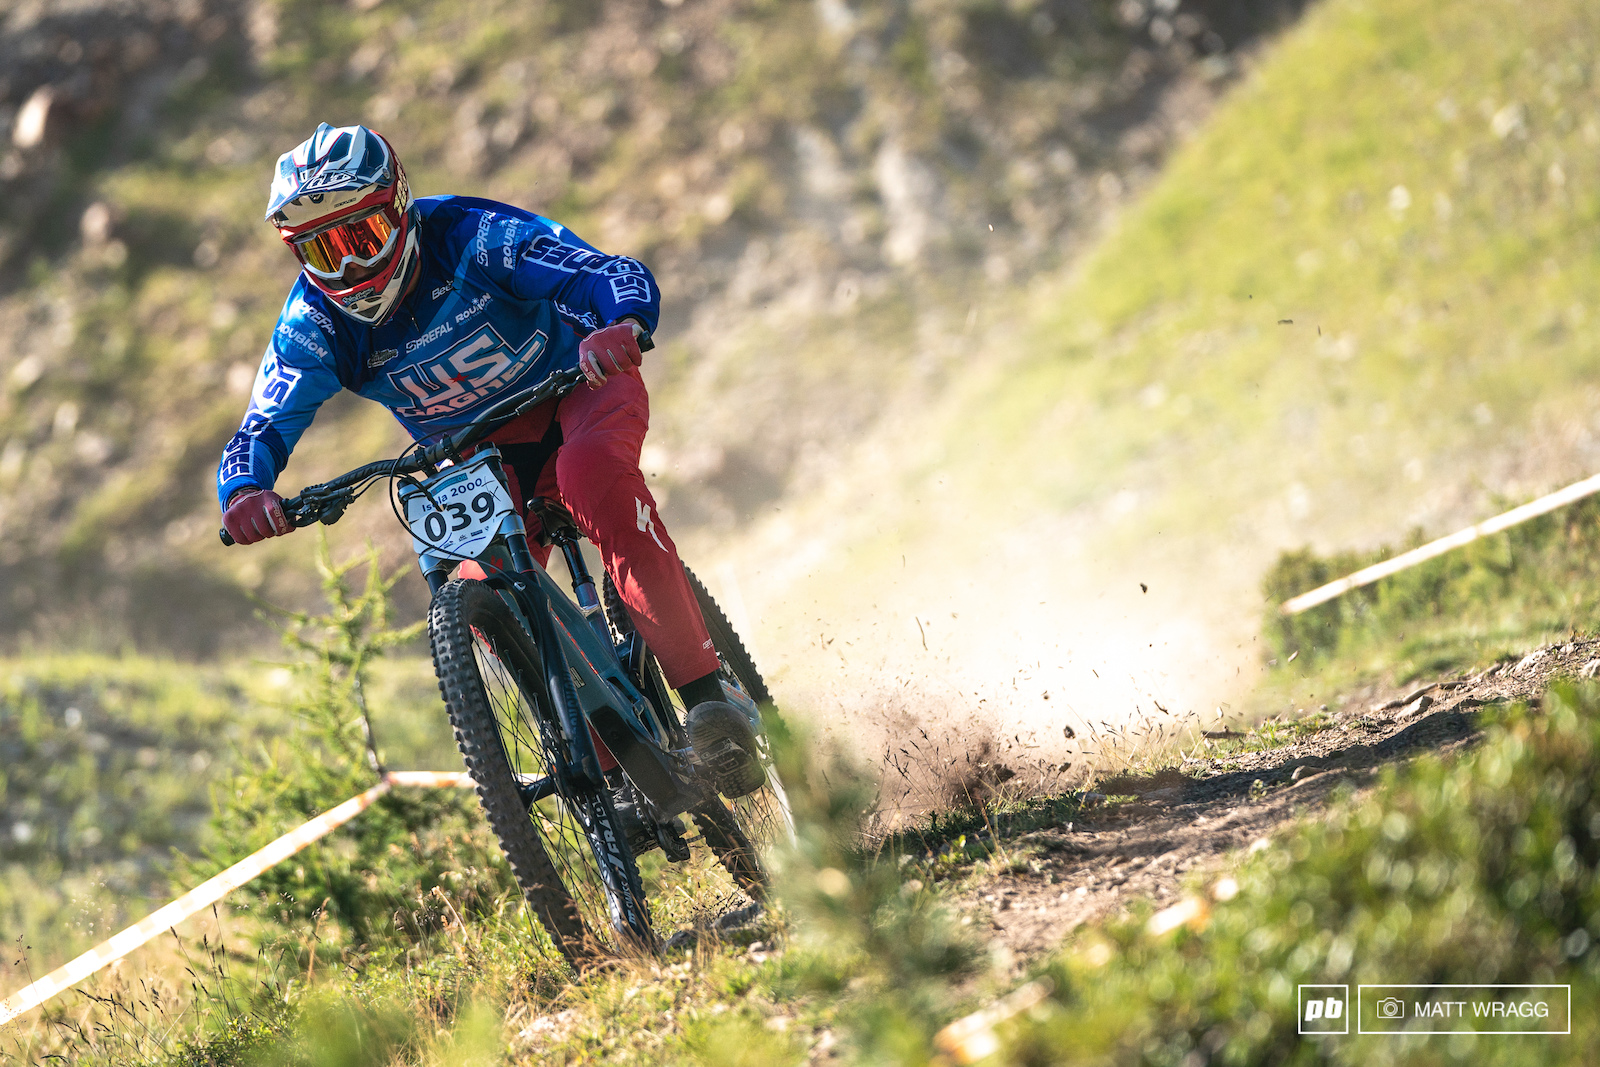 Nicolas Morel tearing up the alpine meadow on the upper part of the course.